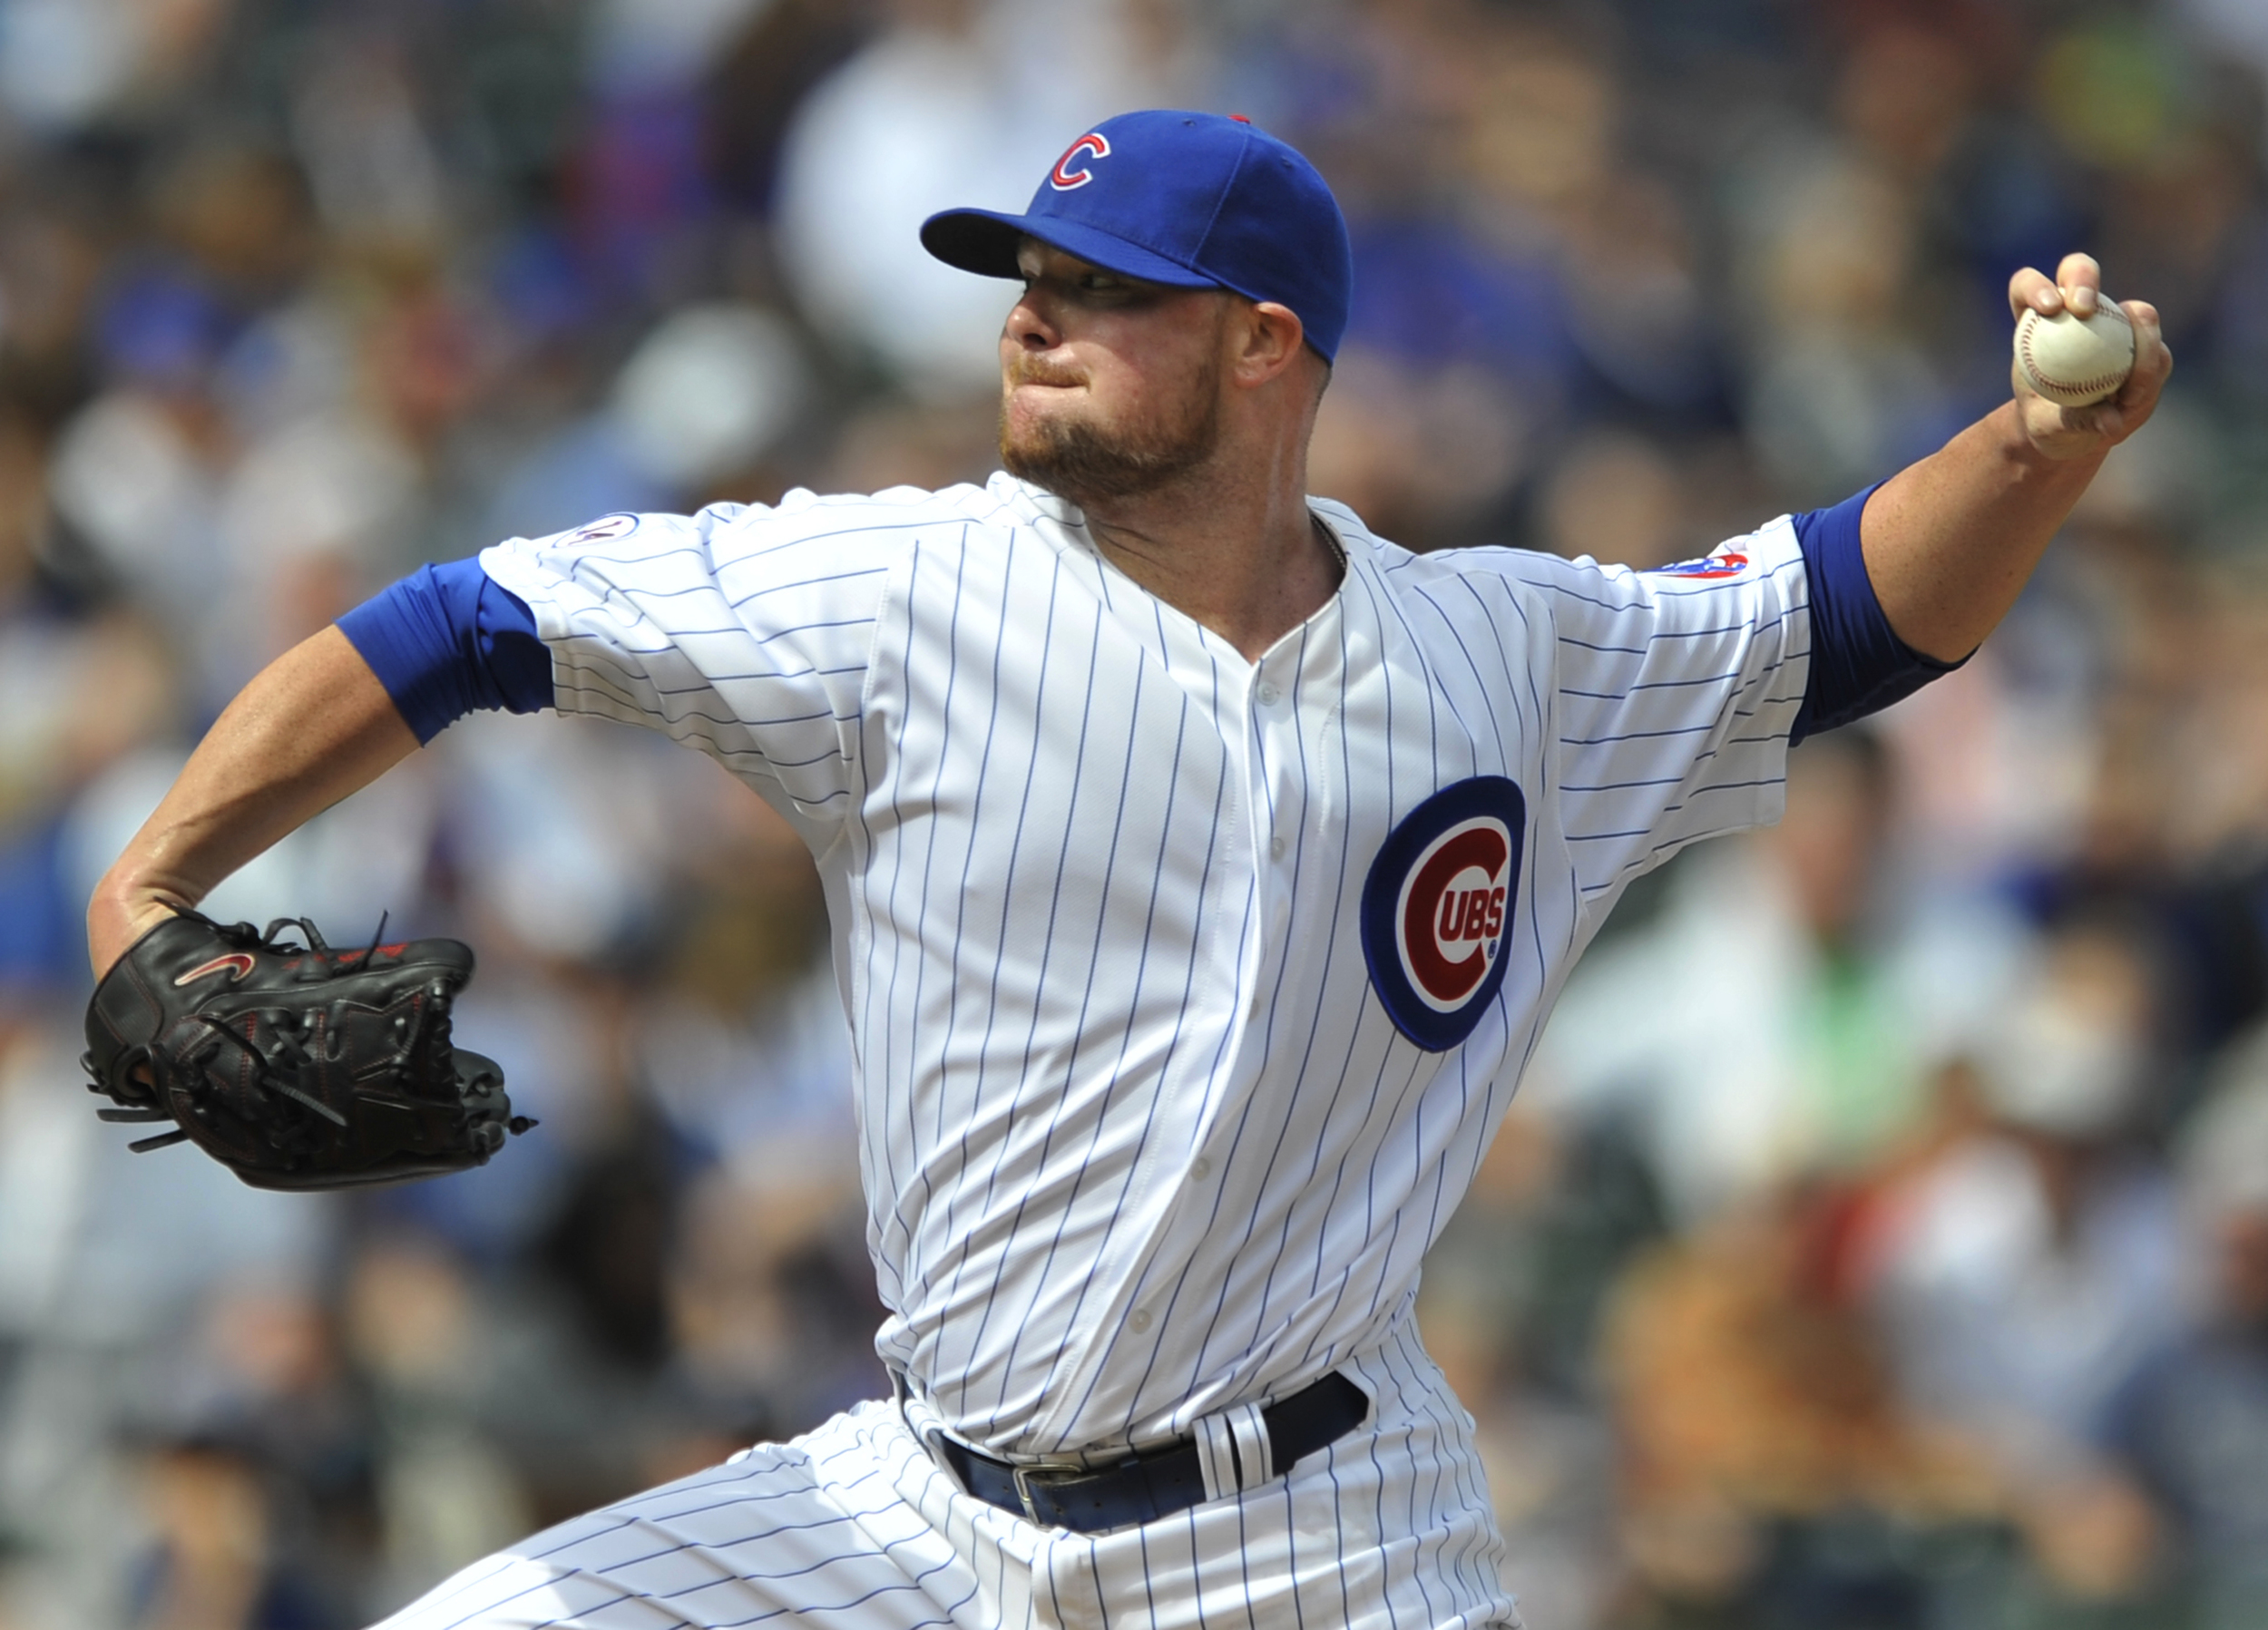 Chicago Cubs starter Jon Lester delivers a pitch during the first inning of a baseball game against the Pittsburgh Pirates Friday, Sept. 25, 2015 in Chicago. (Paul Beaty/AP)